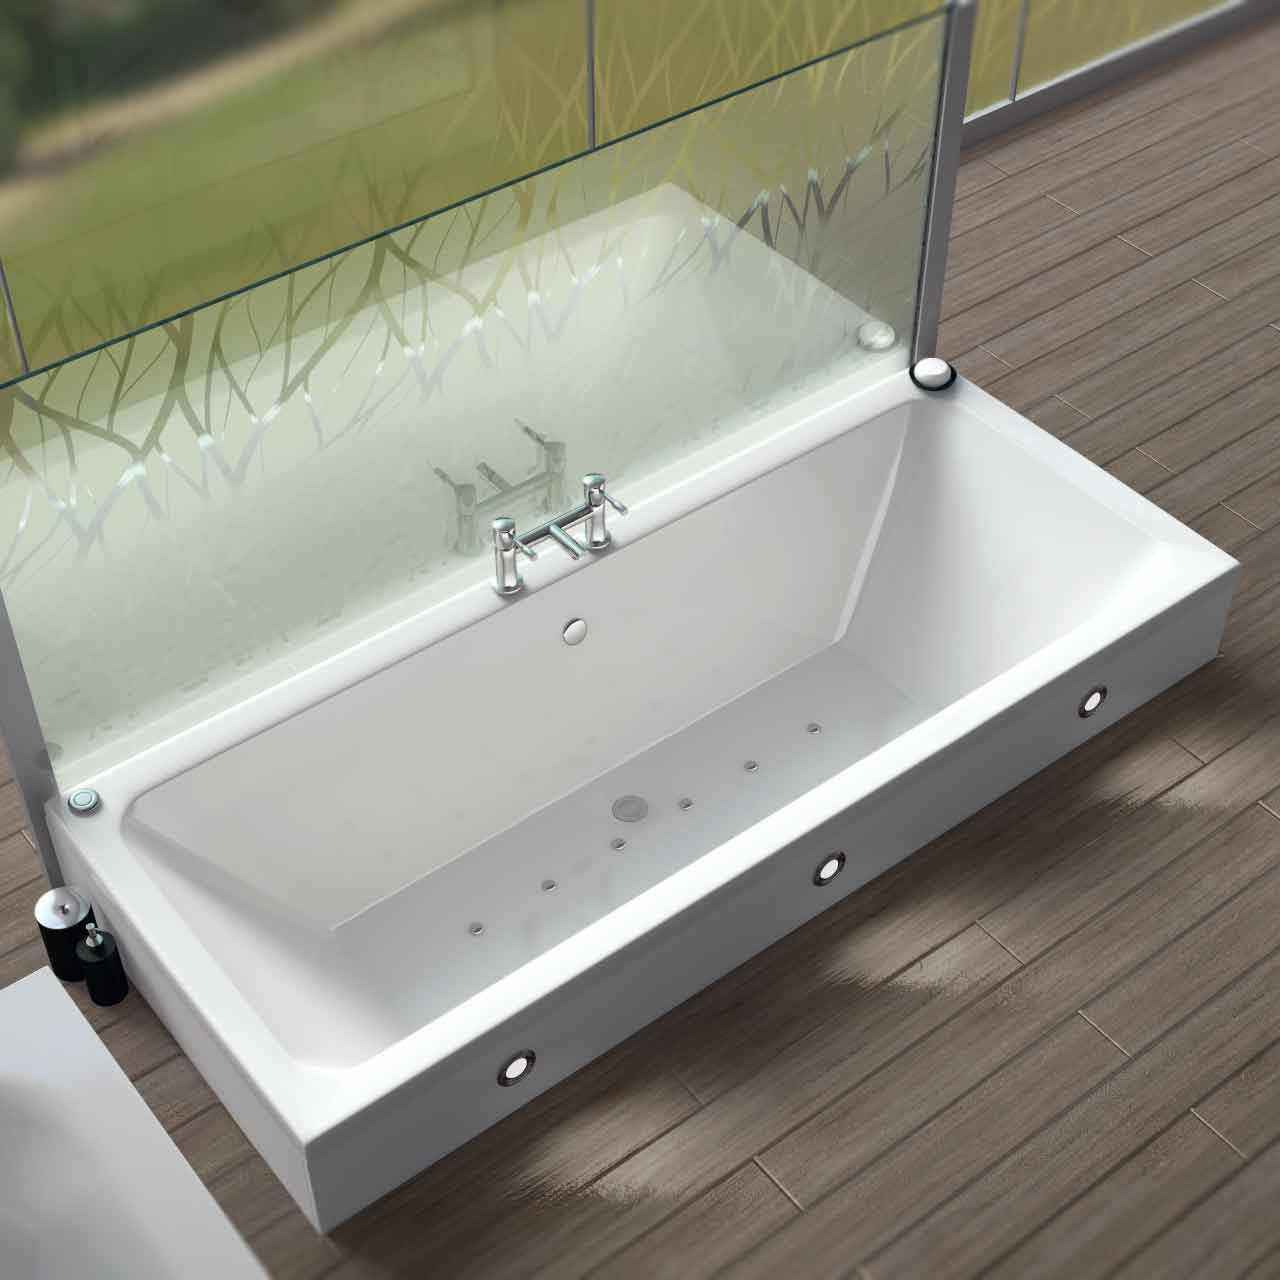 Square Centre Tap 12 Jet Easifit Spa Whirlpool Bath 1700x700mm